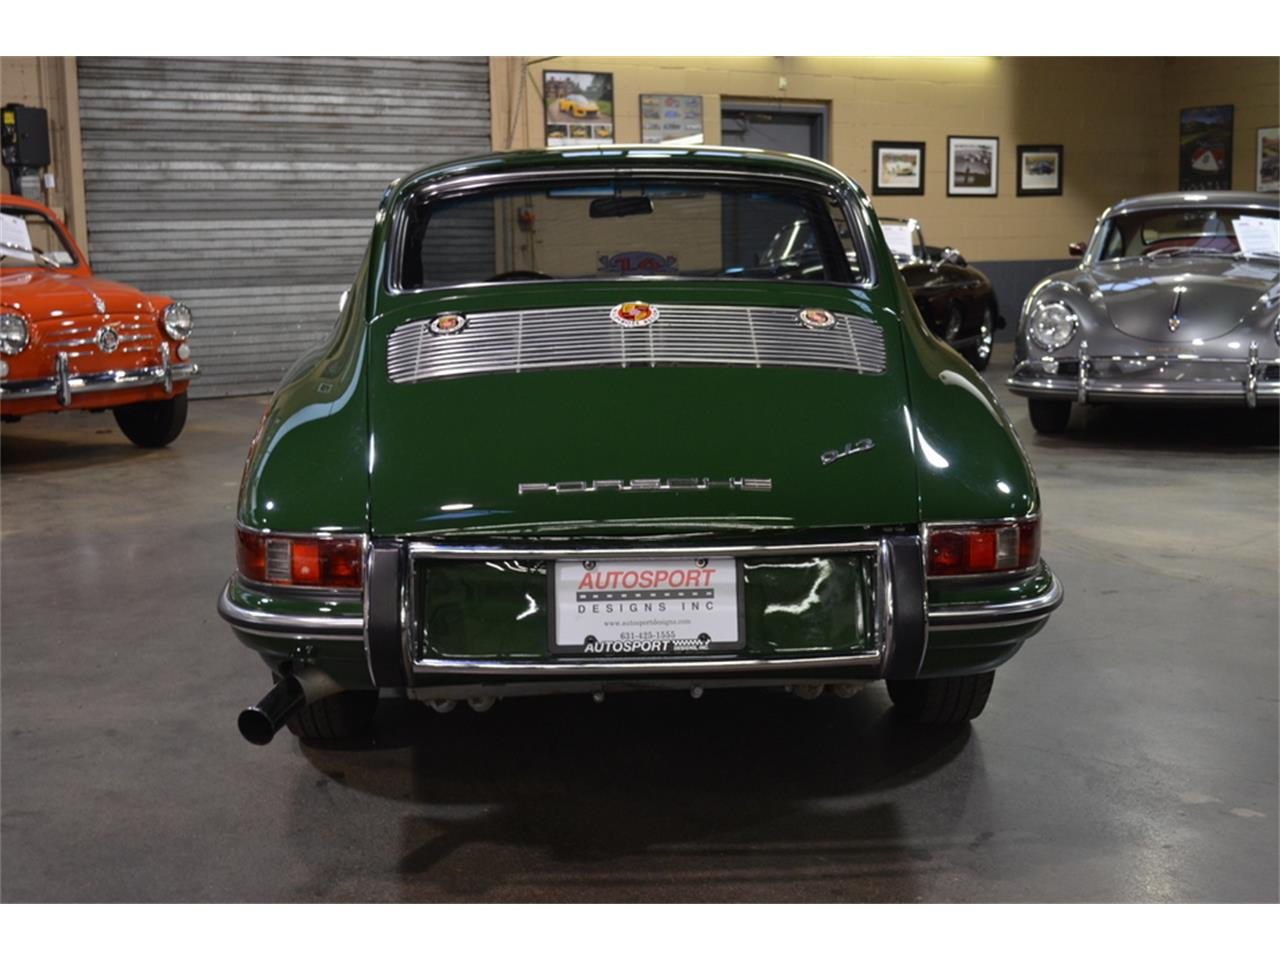 Large Picture of 1966 Porsche 912 located in New York Offered by Autosport Designs Inc - PH4V